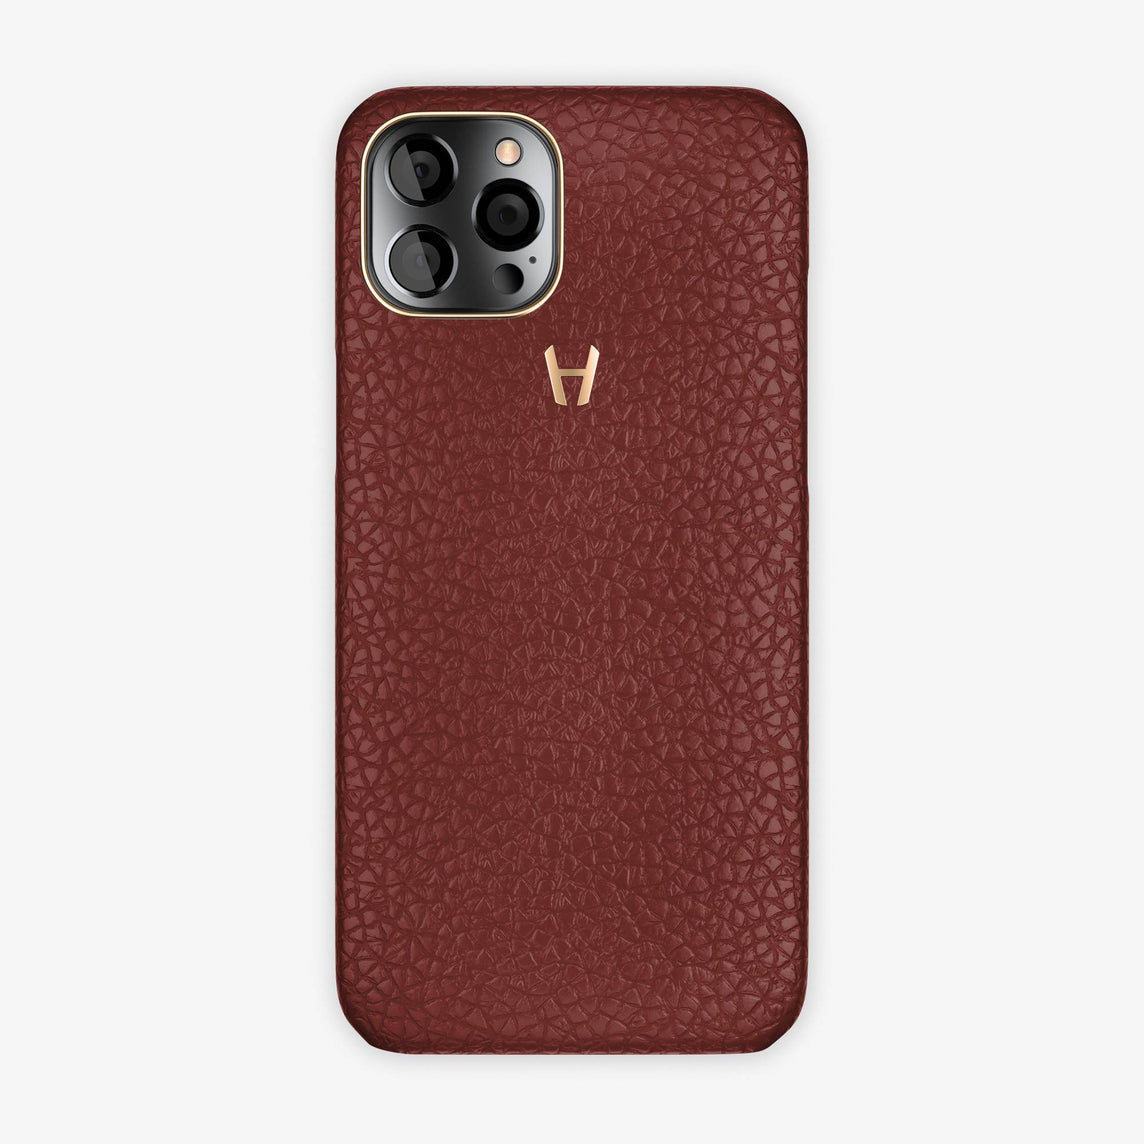 Calfskin Case Apple iPhone 12 Pro Max | Burgundy - Rose Gold